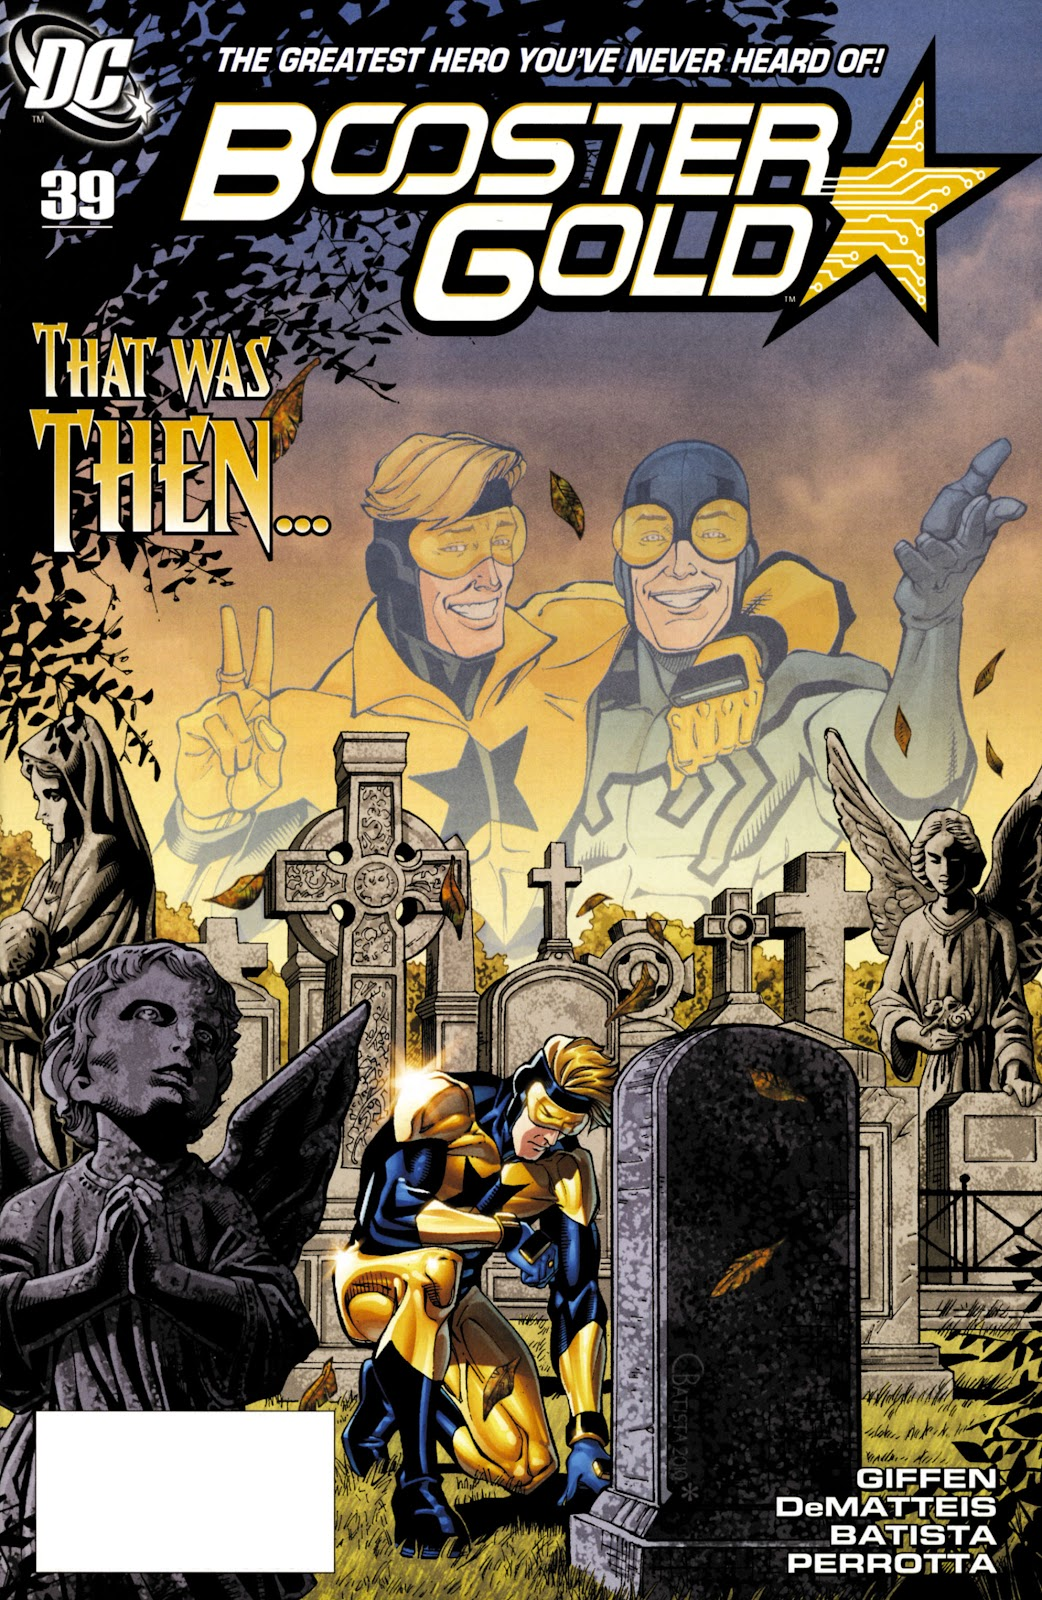 Booster Gold (2007) issue 39 - Page 1